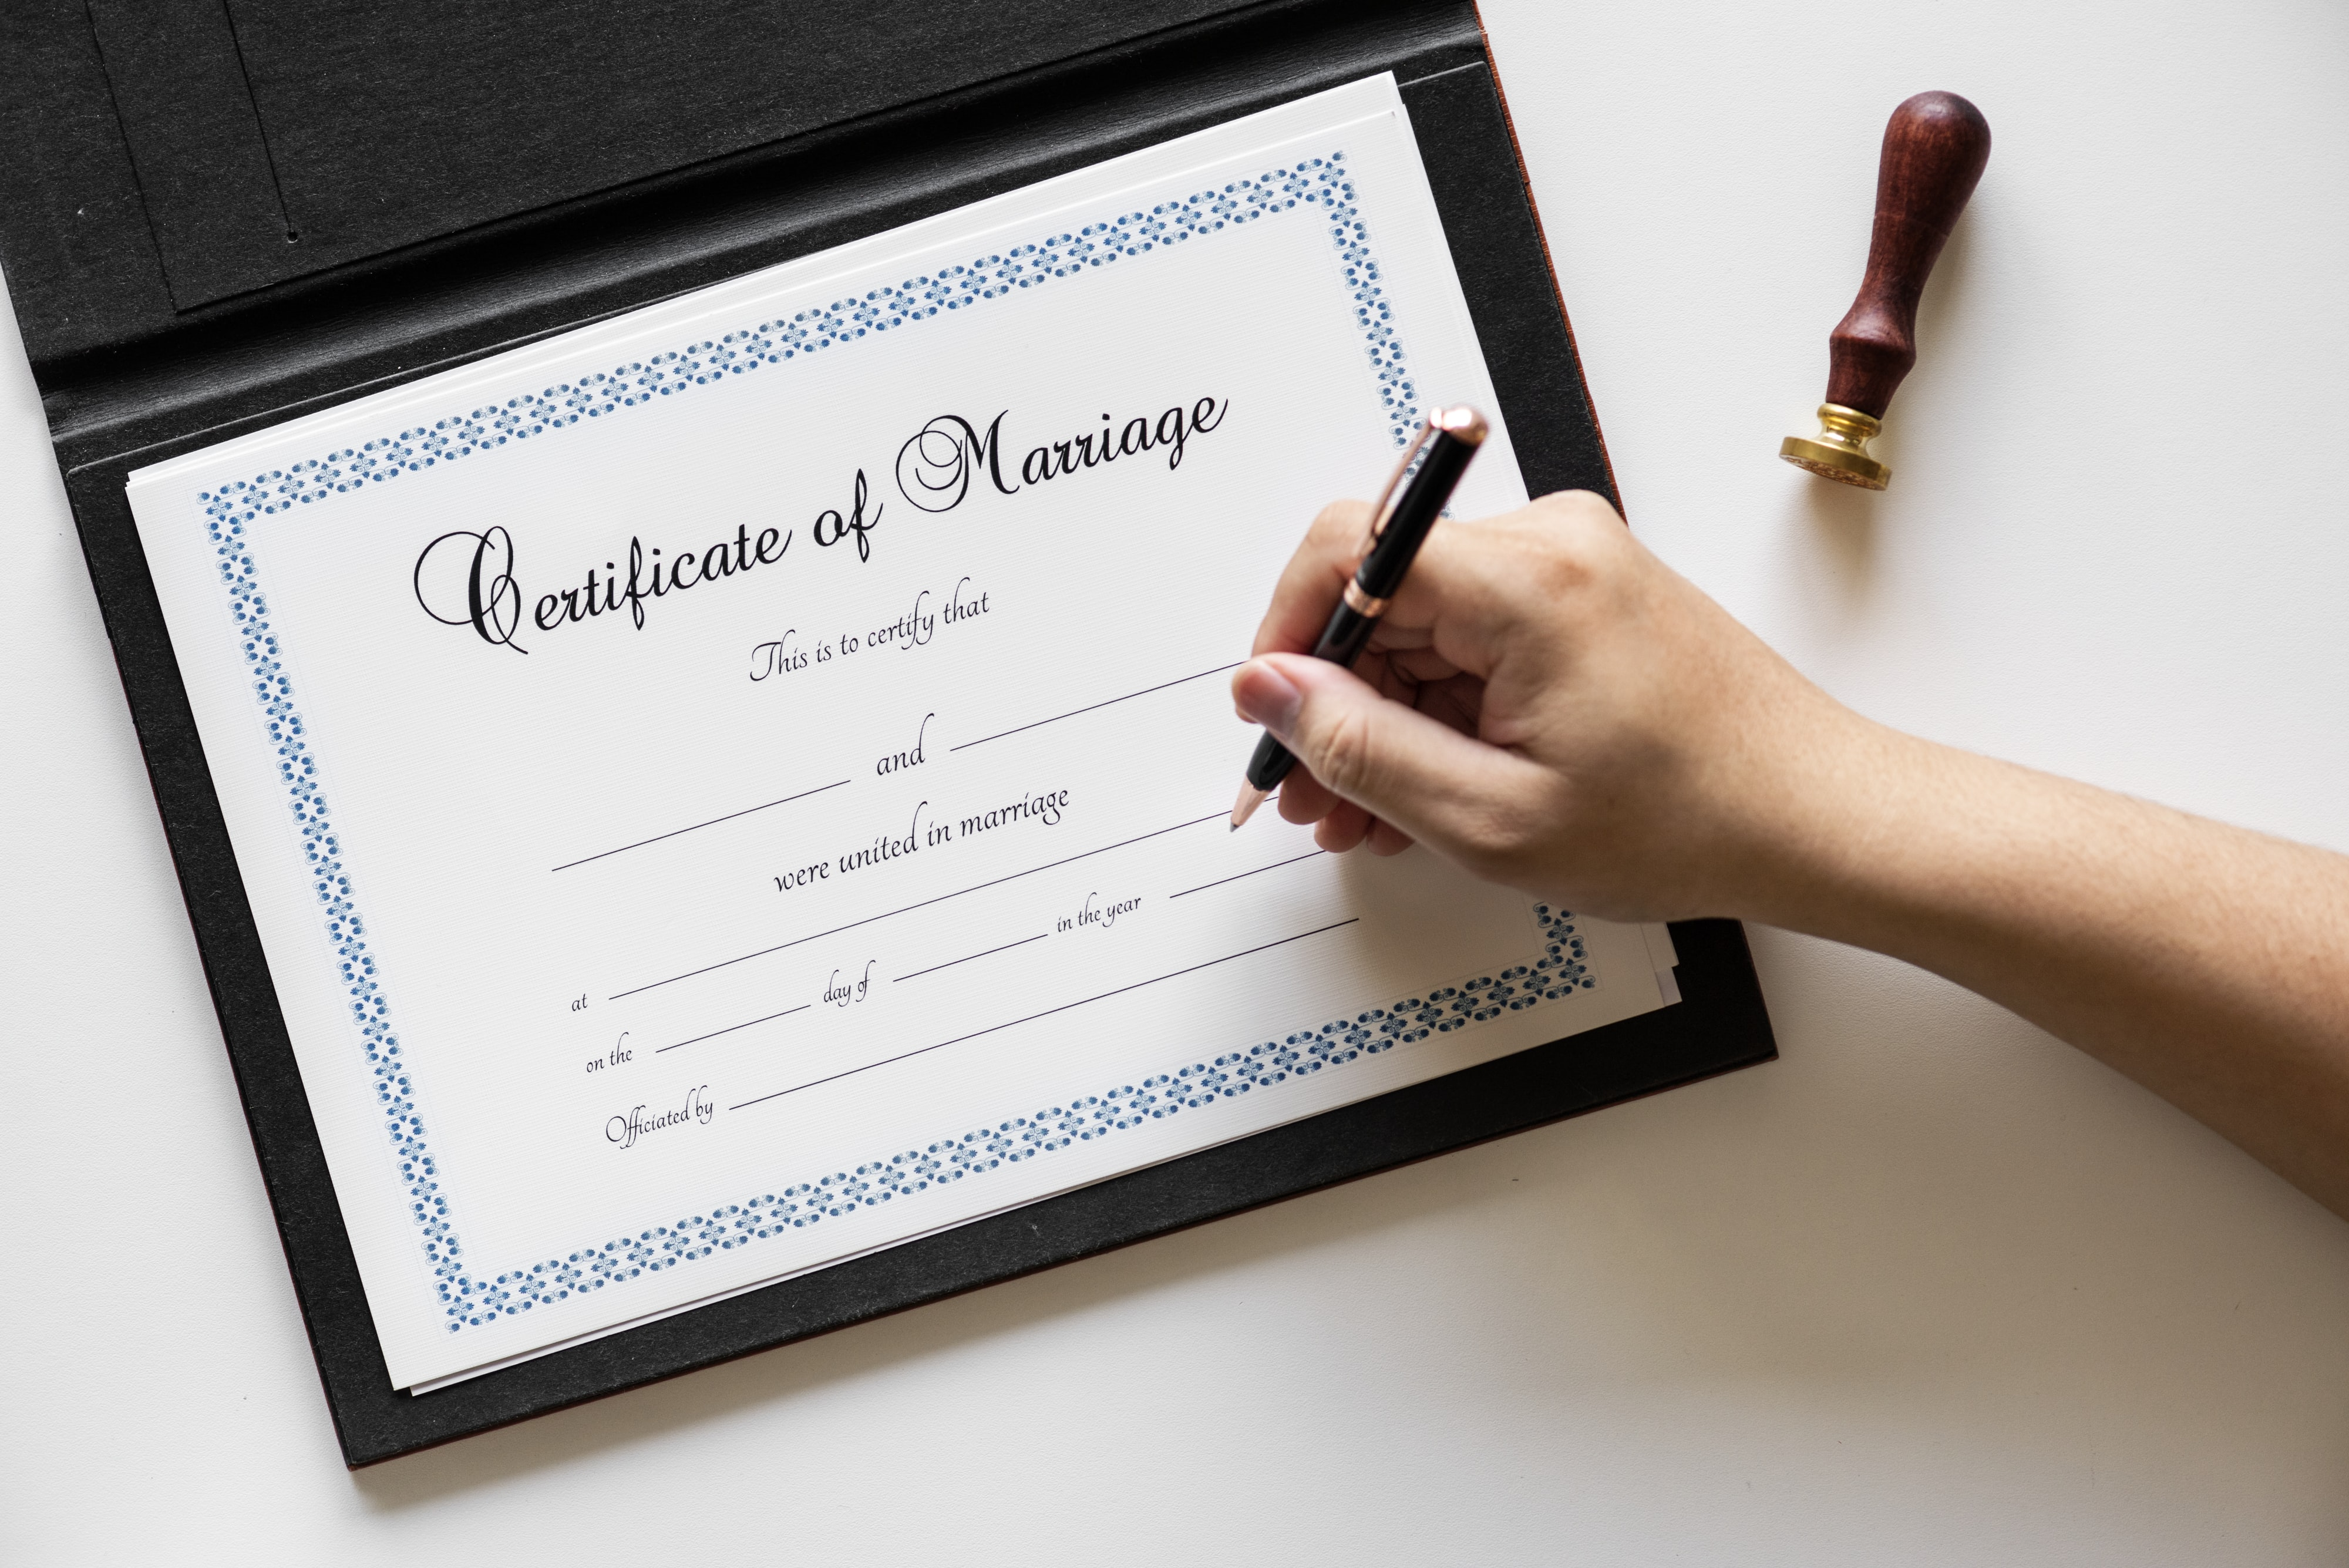 person writing on marriage certificate